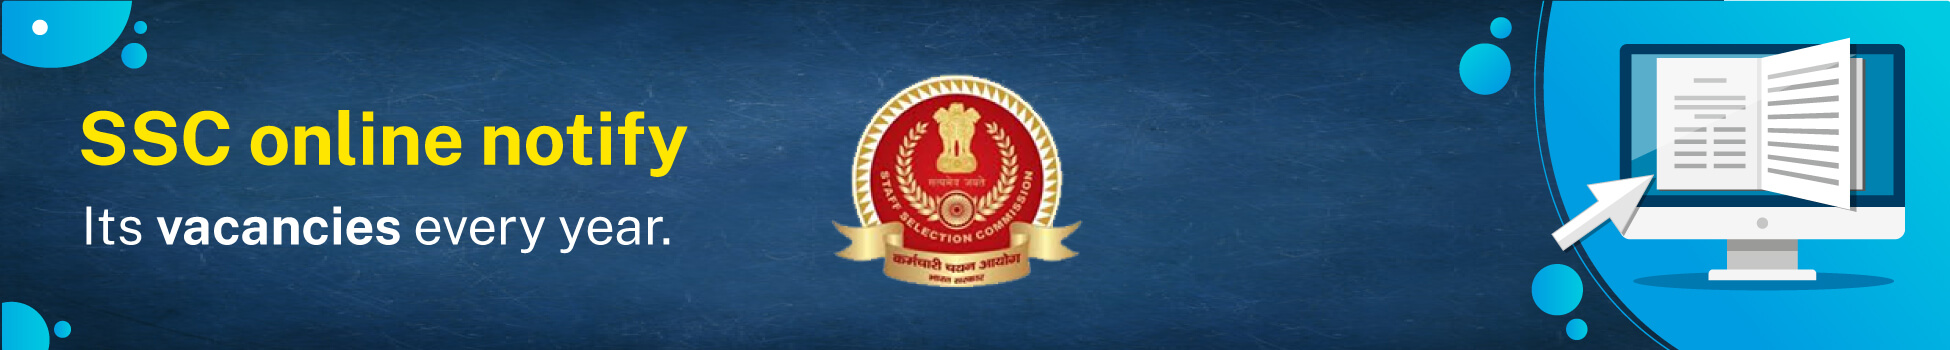 SSC online notify its vacancies every year.